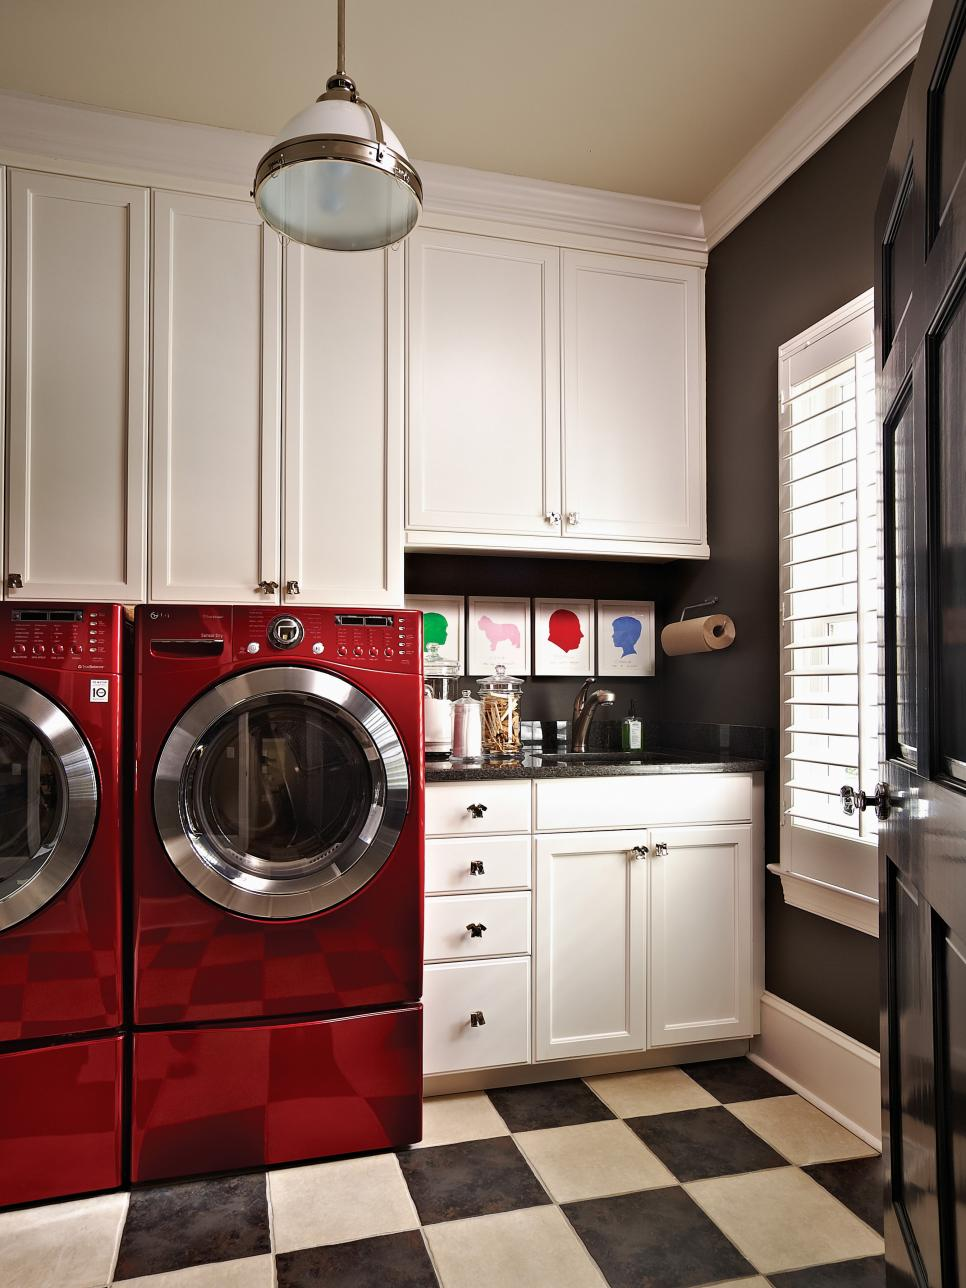 Beautiful and efficient laundry room designs hgtv - Laundry room design ideas ...